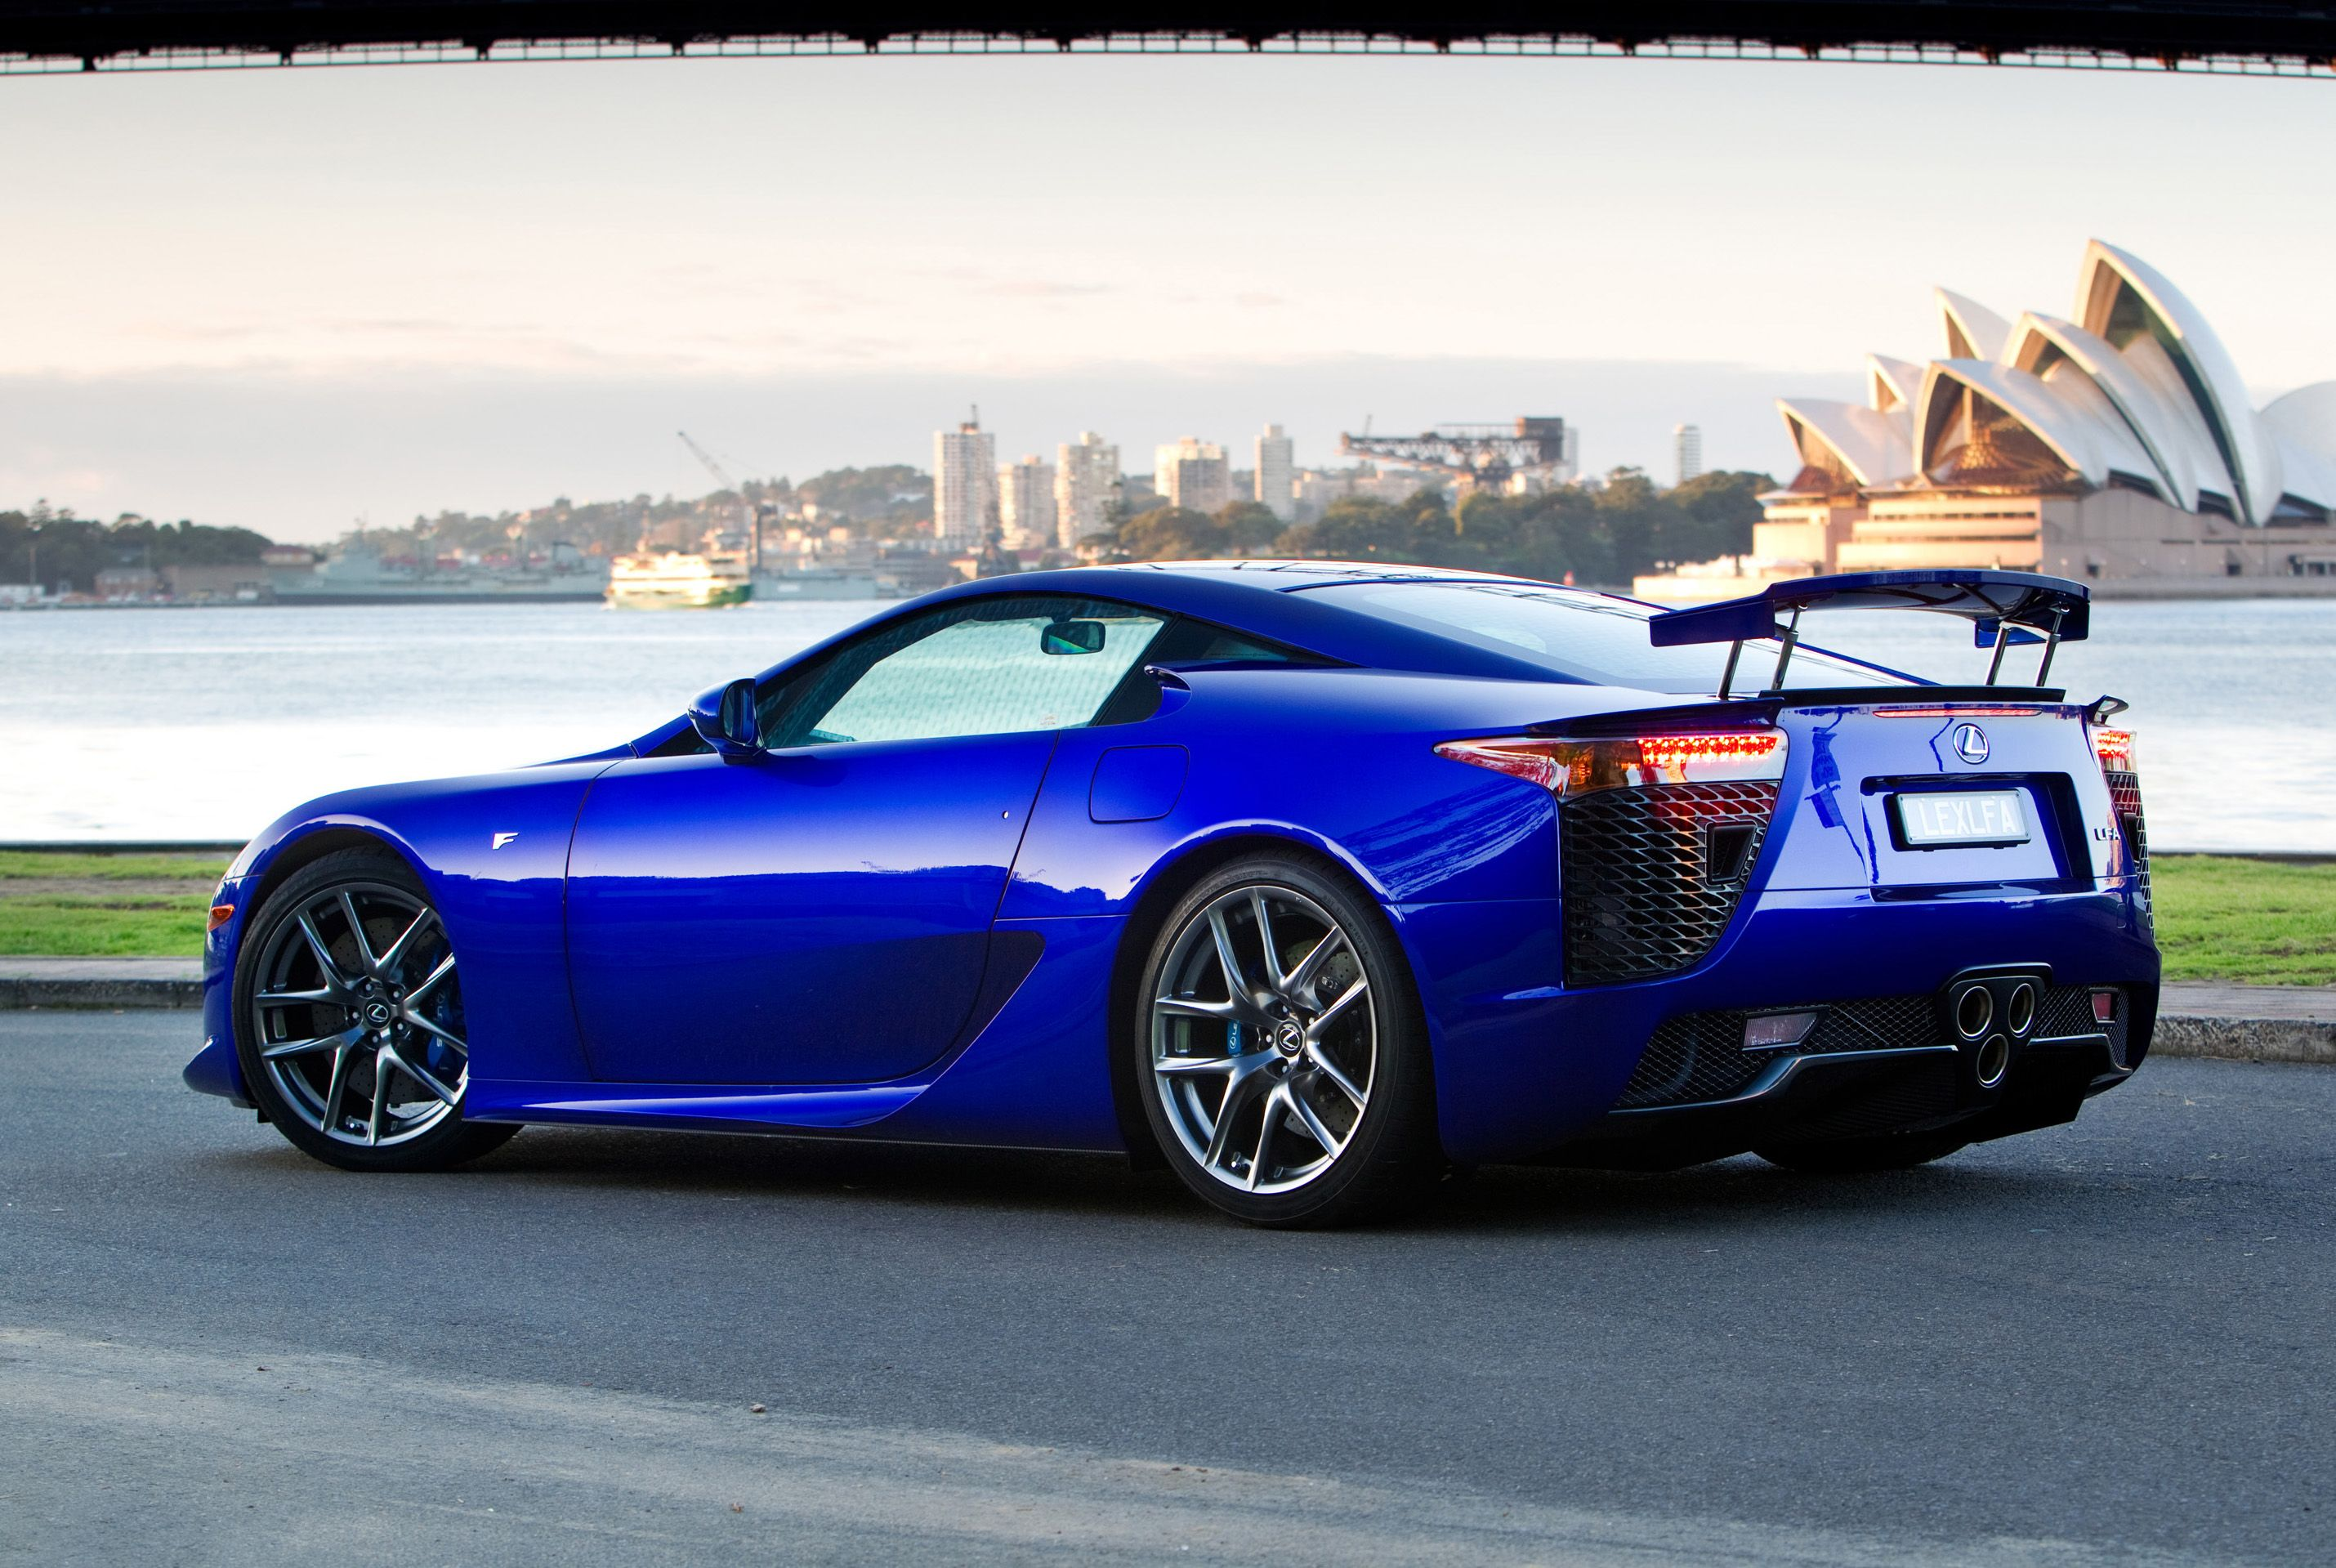 Lexus LFA   One Of My Most Favorite Cars To Drive In NFS Most Wanted